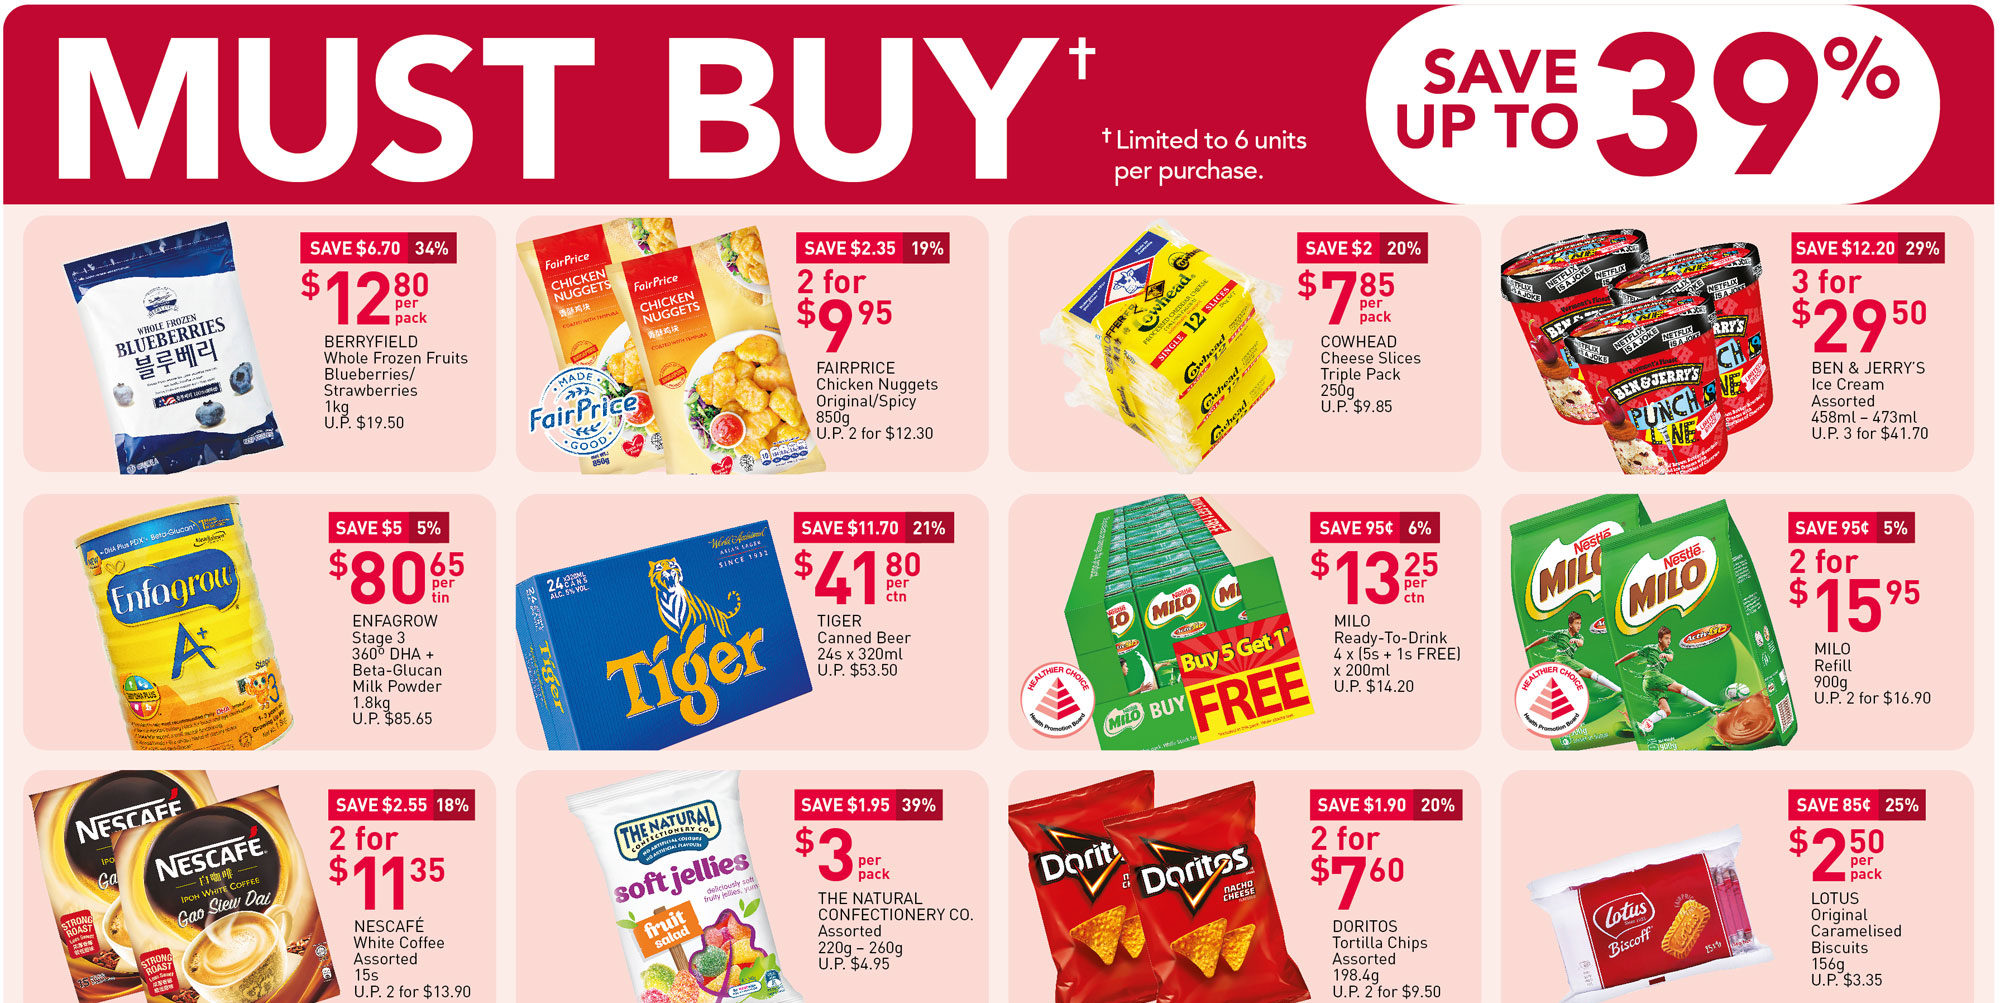 NTUC FairPrice Singapore Your Weekly Saver Promotions 18-24 Mar 2021